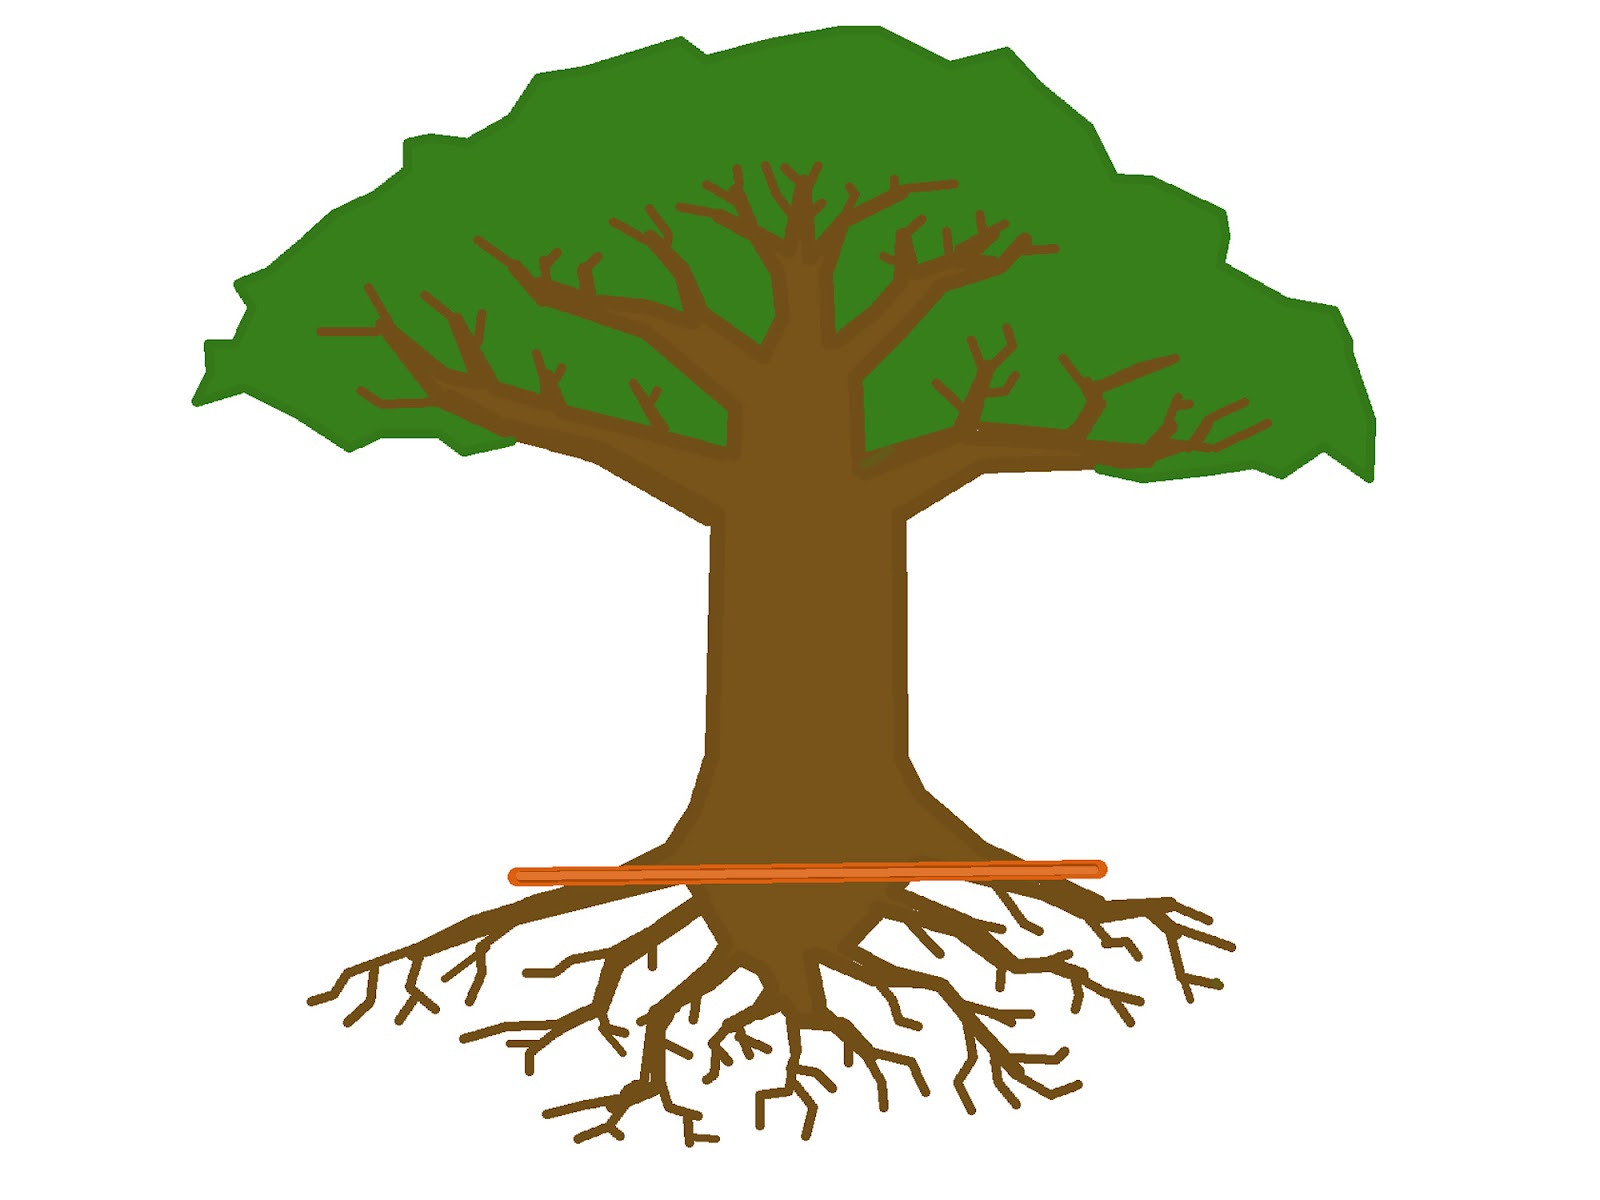 Trees With Roots Clipart Best-Trees With Roots Clipart Best-16